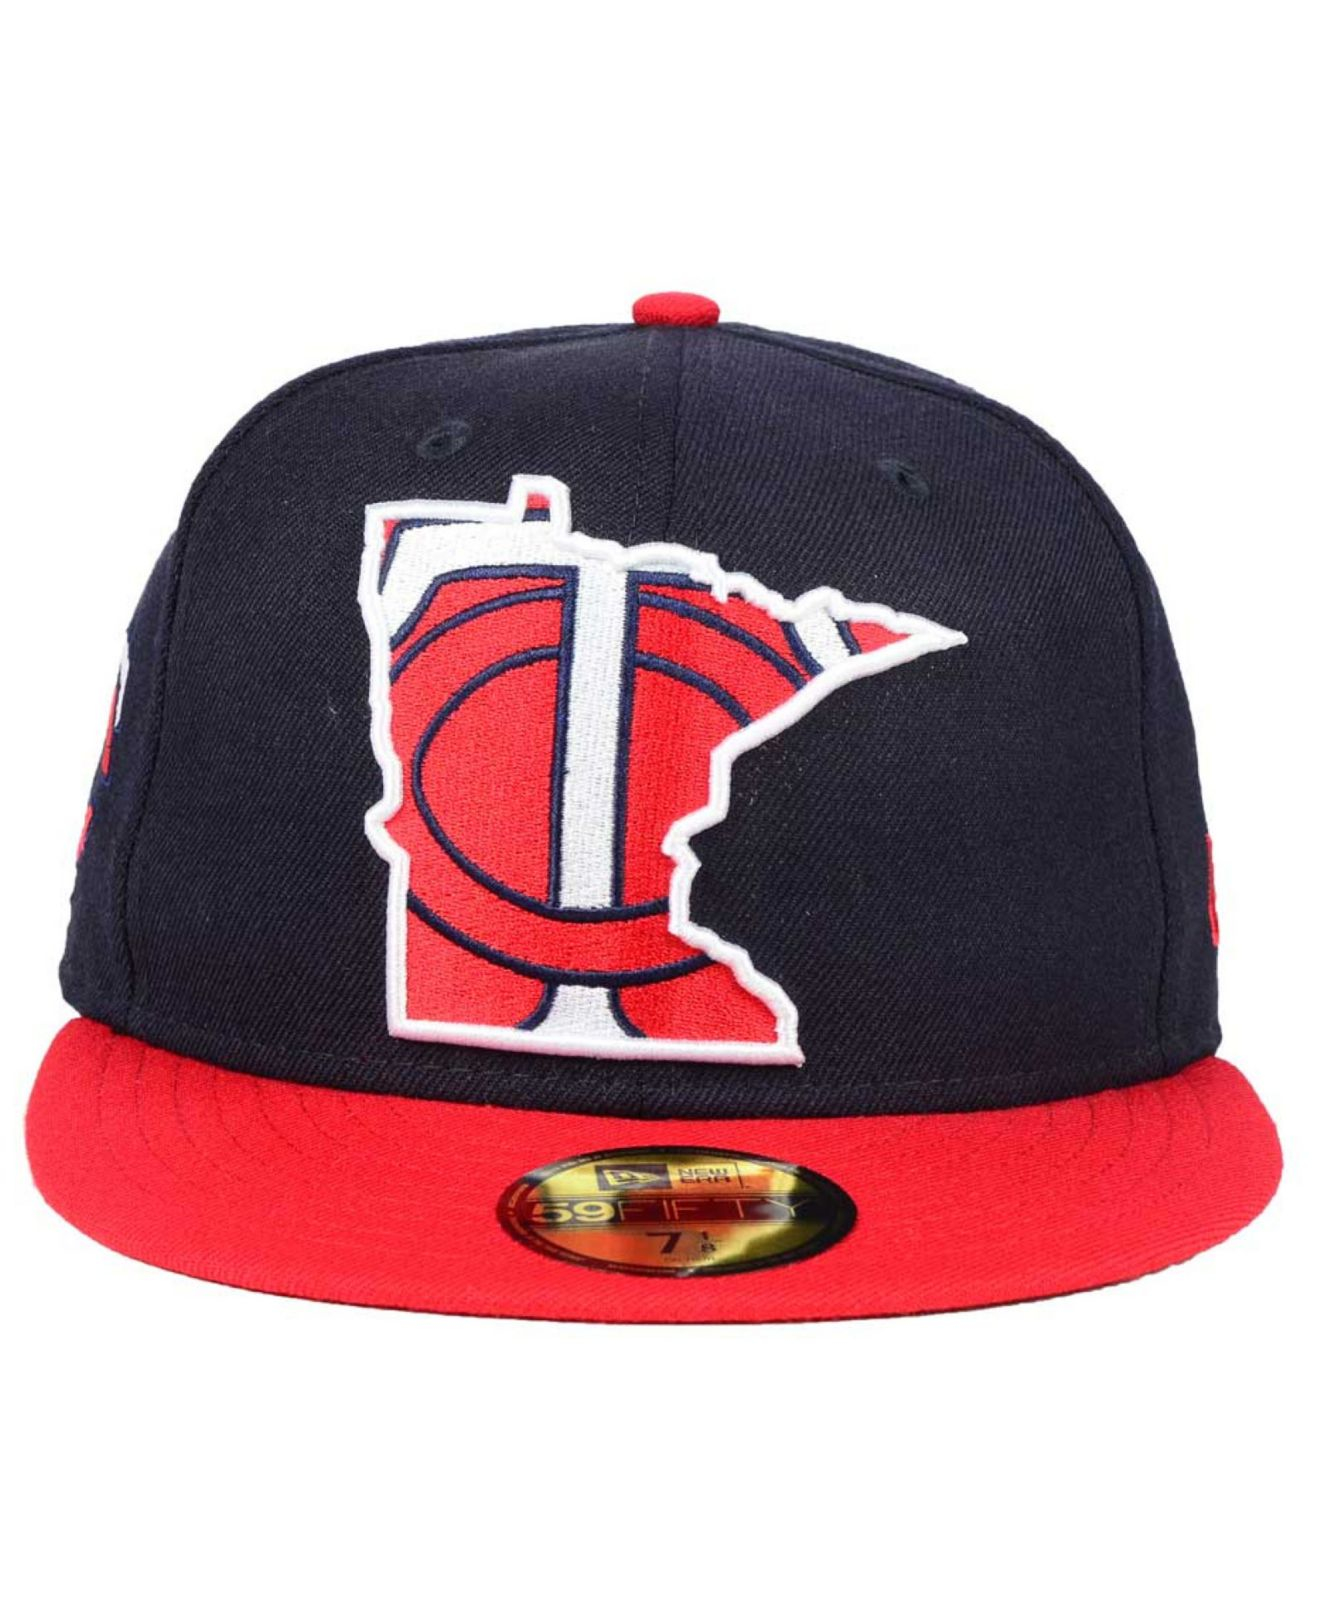 size 40 aefb7 21229 Lyst - KTZ Minnesota Twins Big State 59fifty Cap in Blue for Men